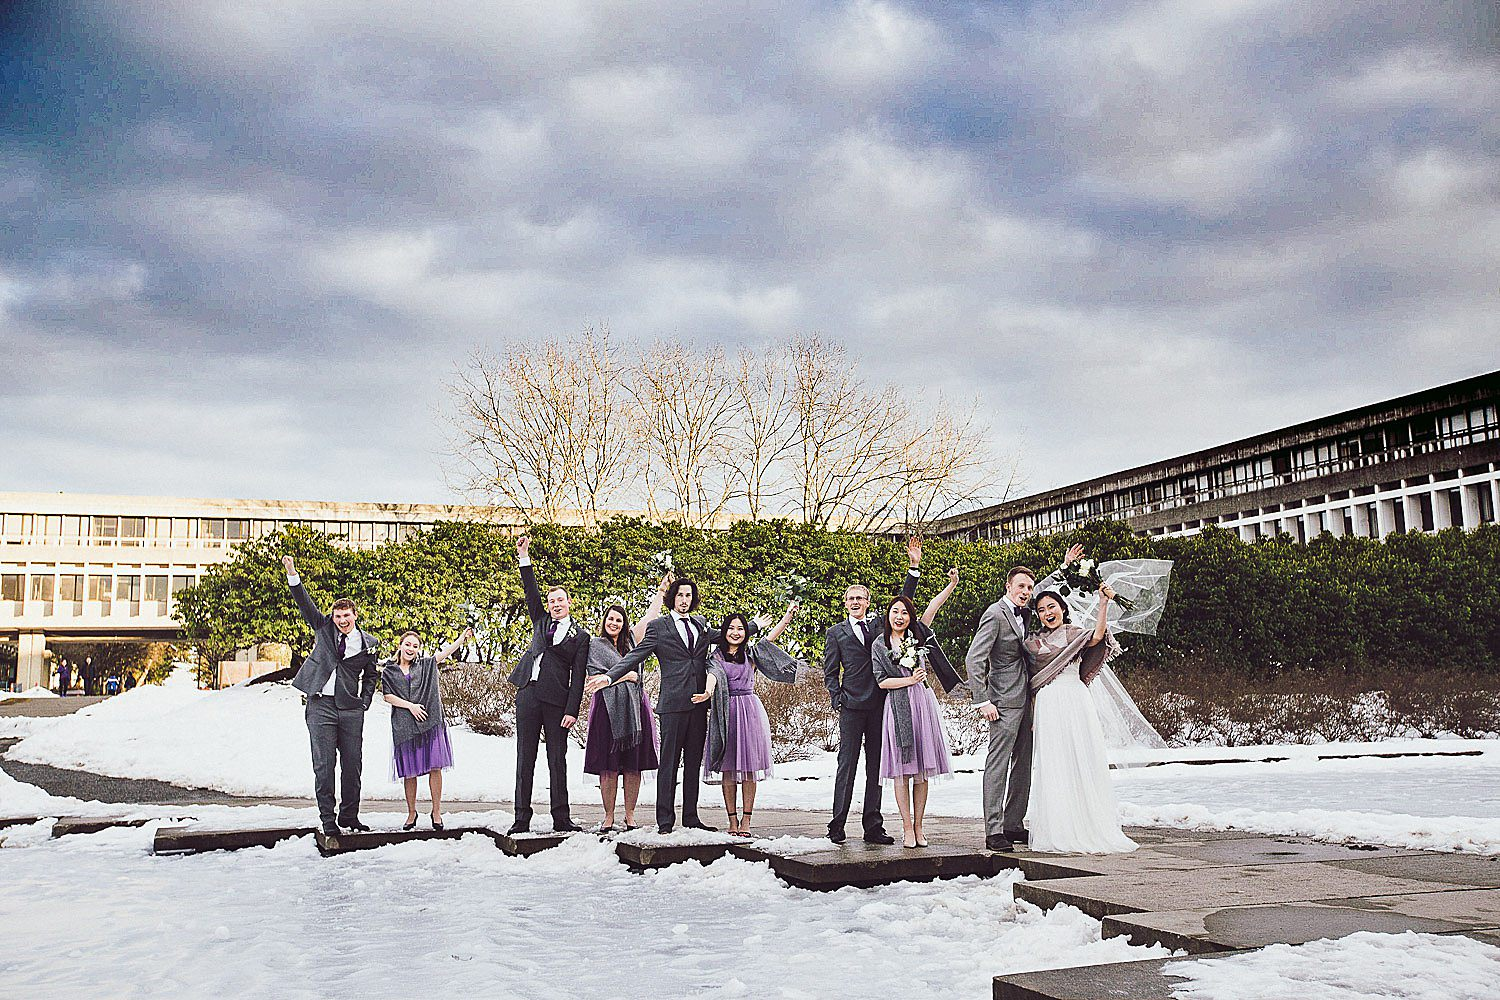 Wedding party stands by the Reflecting Pond at Simon Fraser University